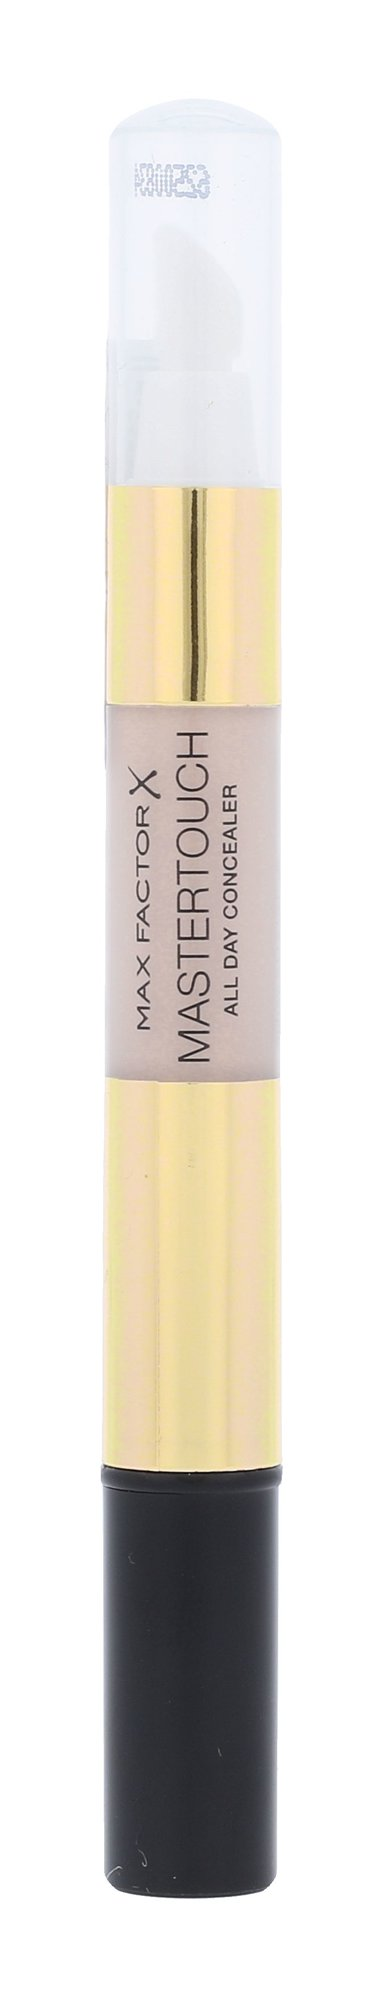 Max Factor Mastertouch Cosmetic 7ml 303 Ivory